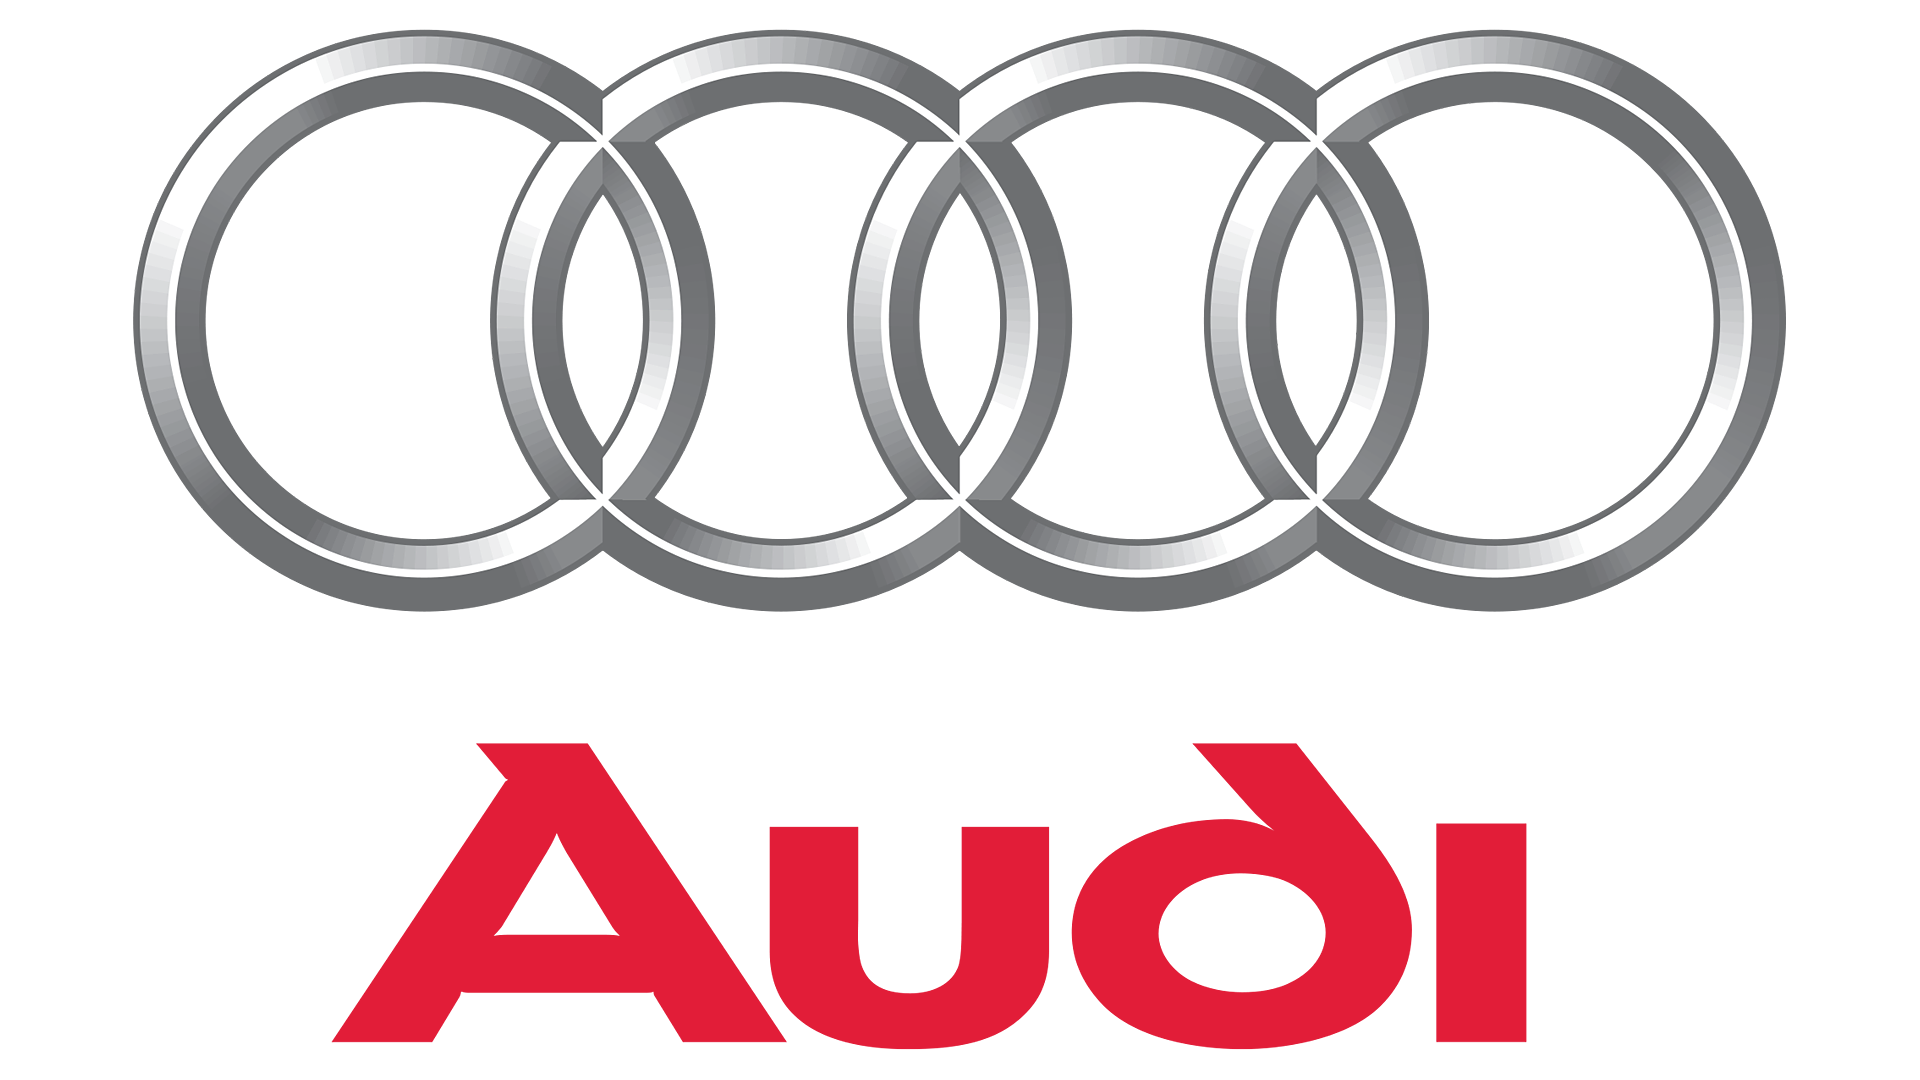 audi logo transparent. 1920x1080 hd 1080p audi logo transparent